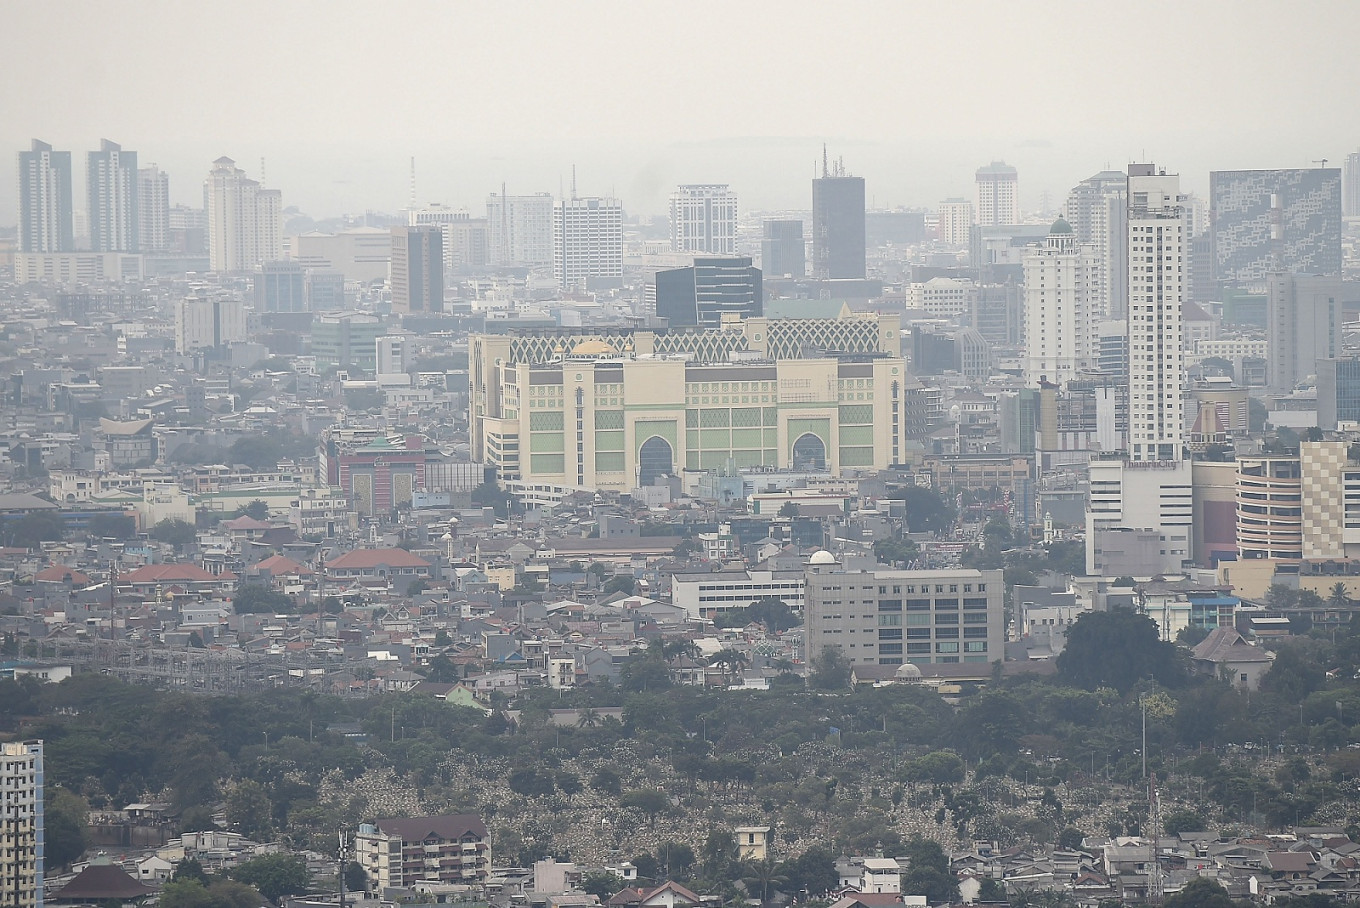 Air pollution 'likely' to cut COVID-19 survival: Experts